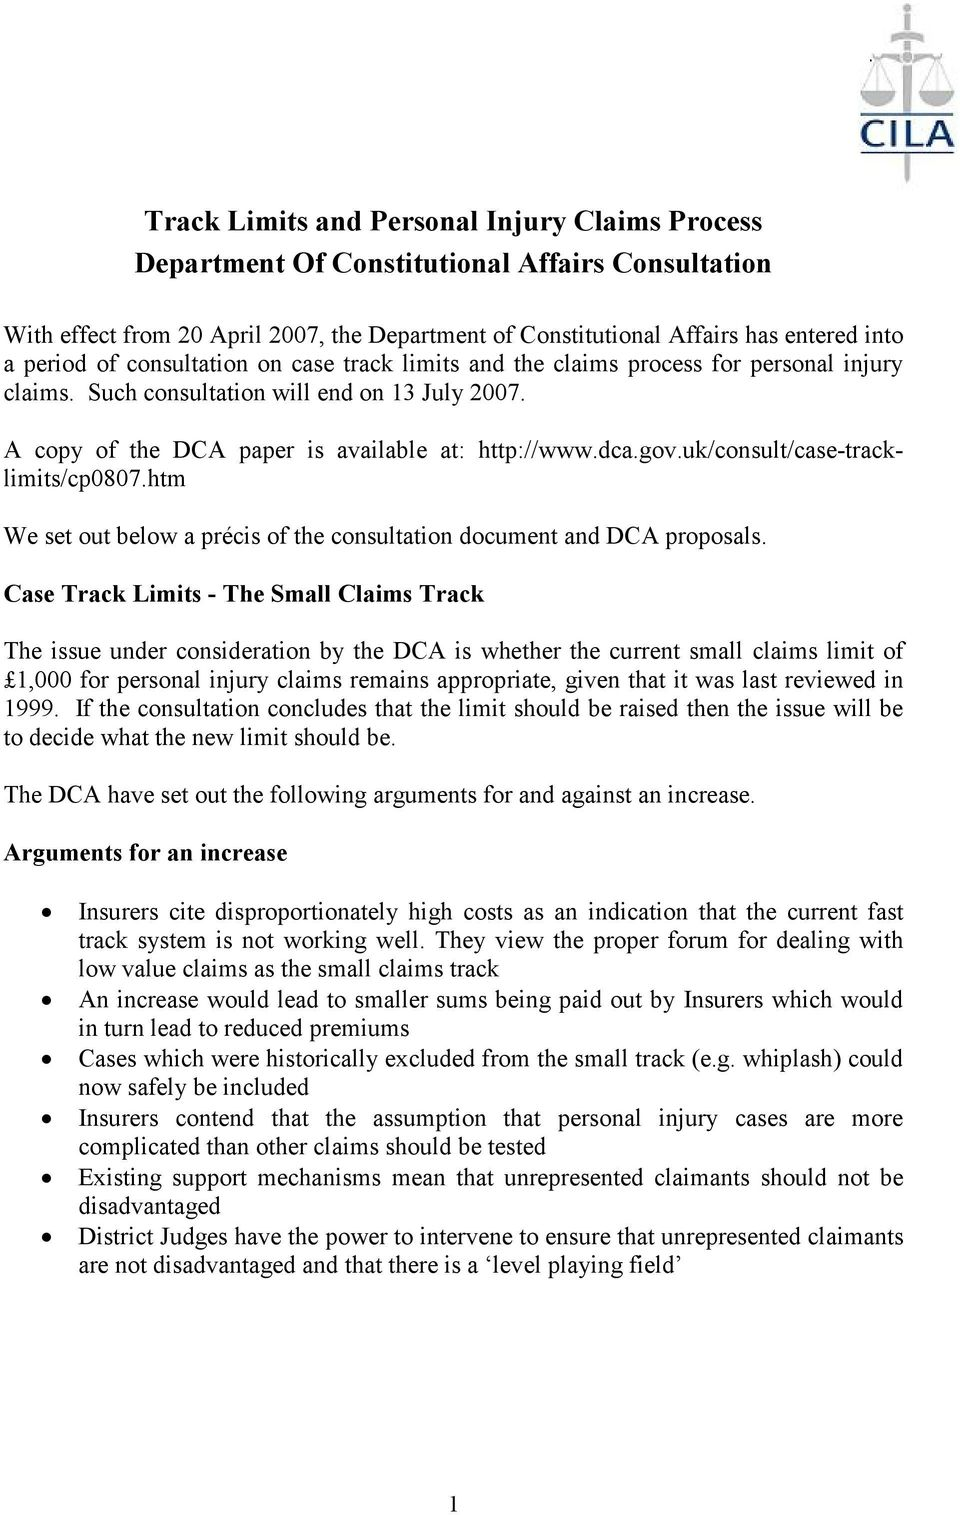 uk/consult/case-tracklimits/cp0807.htm We set out below a précis of the consultation document and DCA proposals.